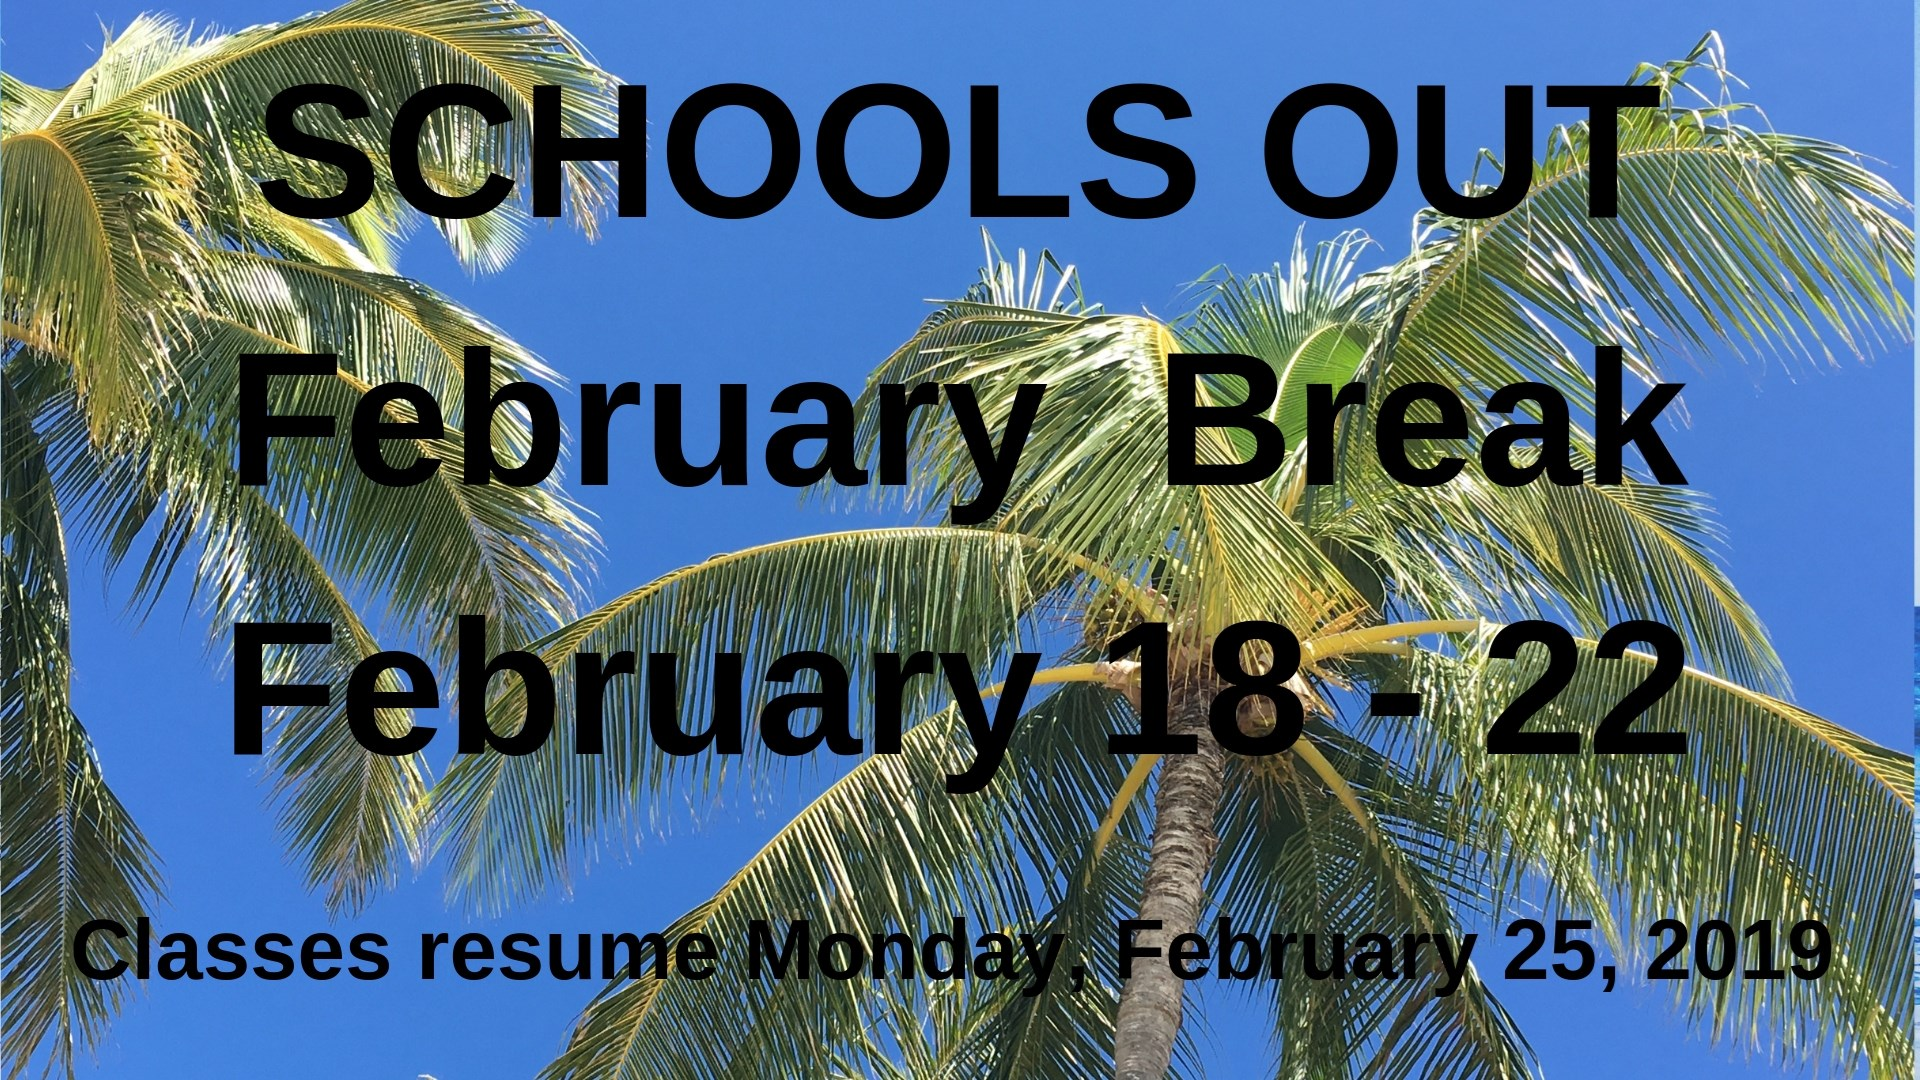 SCHOOLS OUT February Break February 18 - 22.jpg